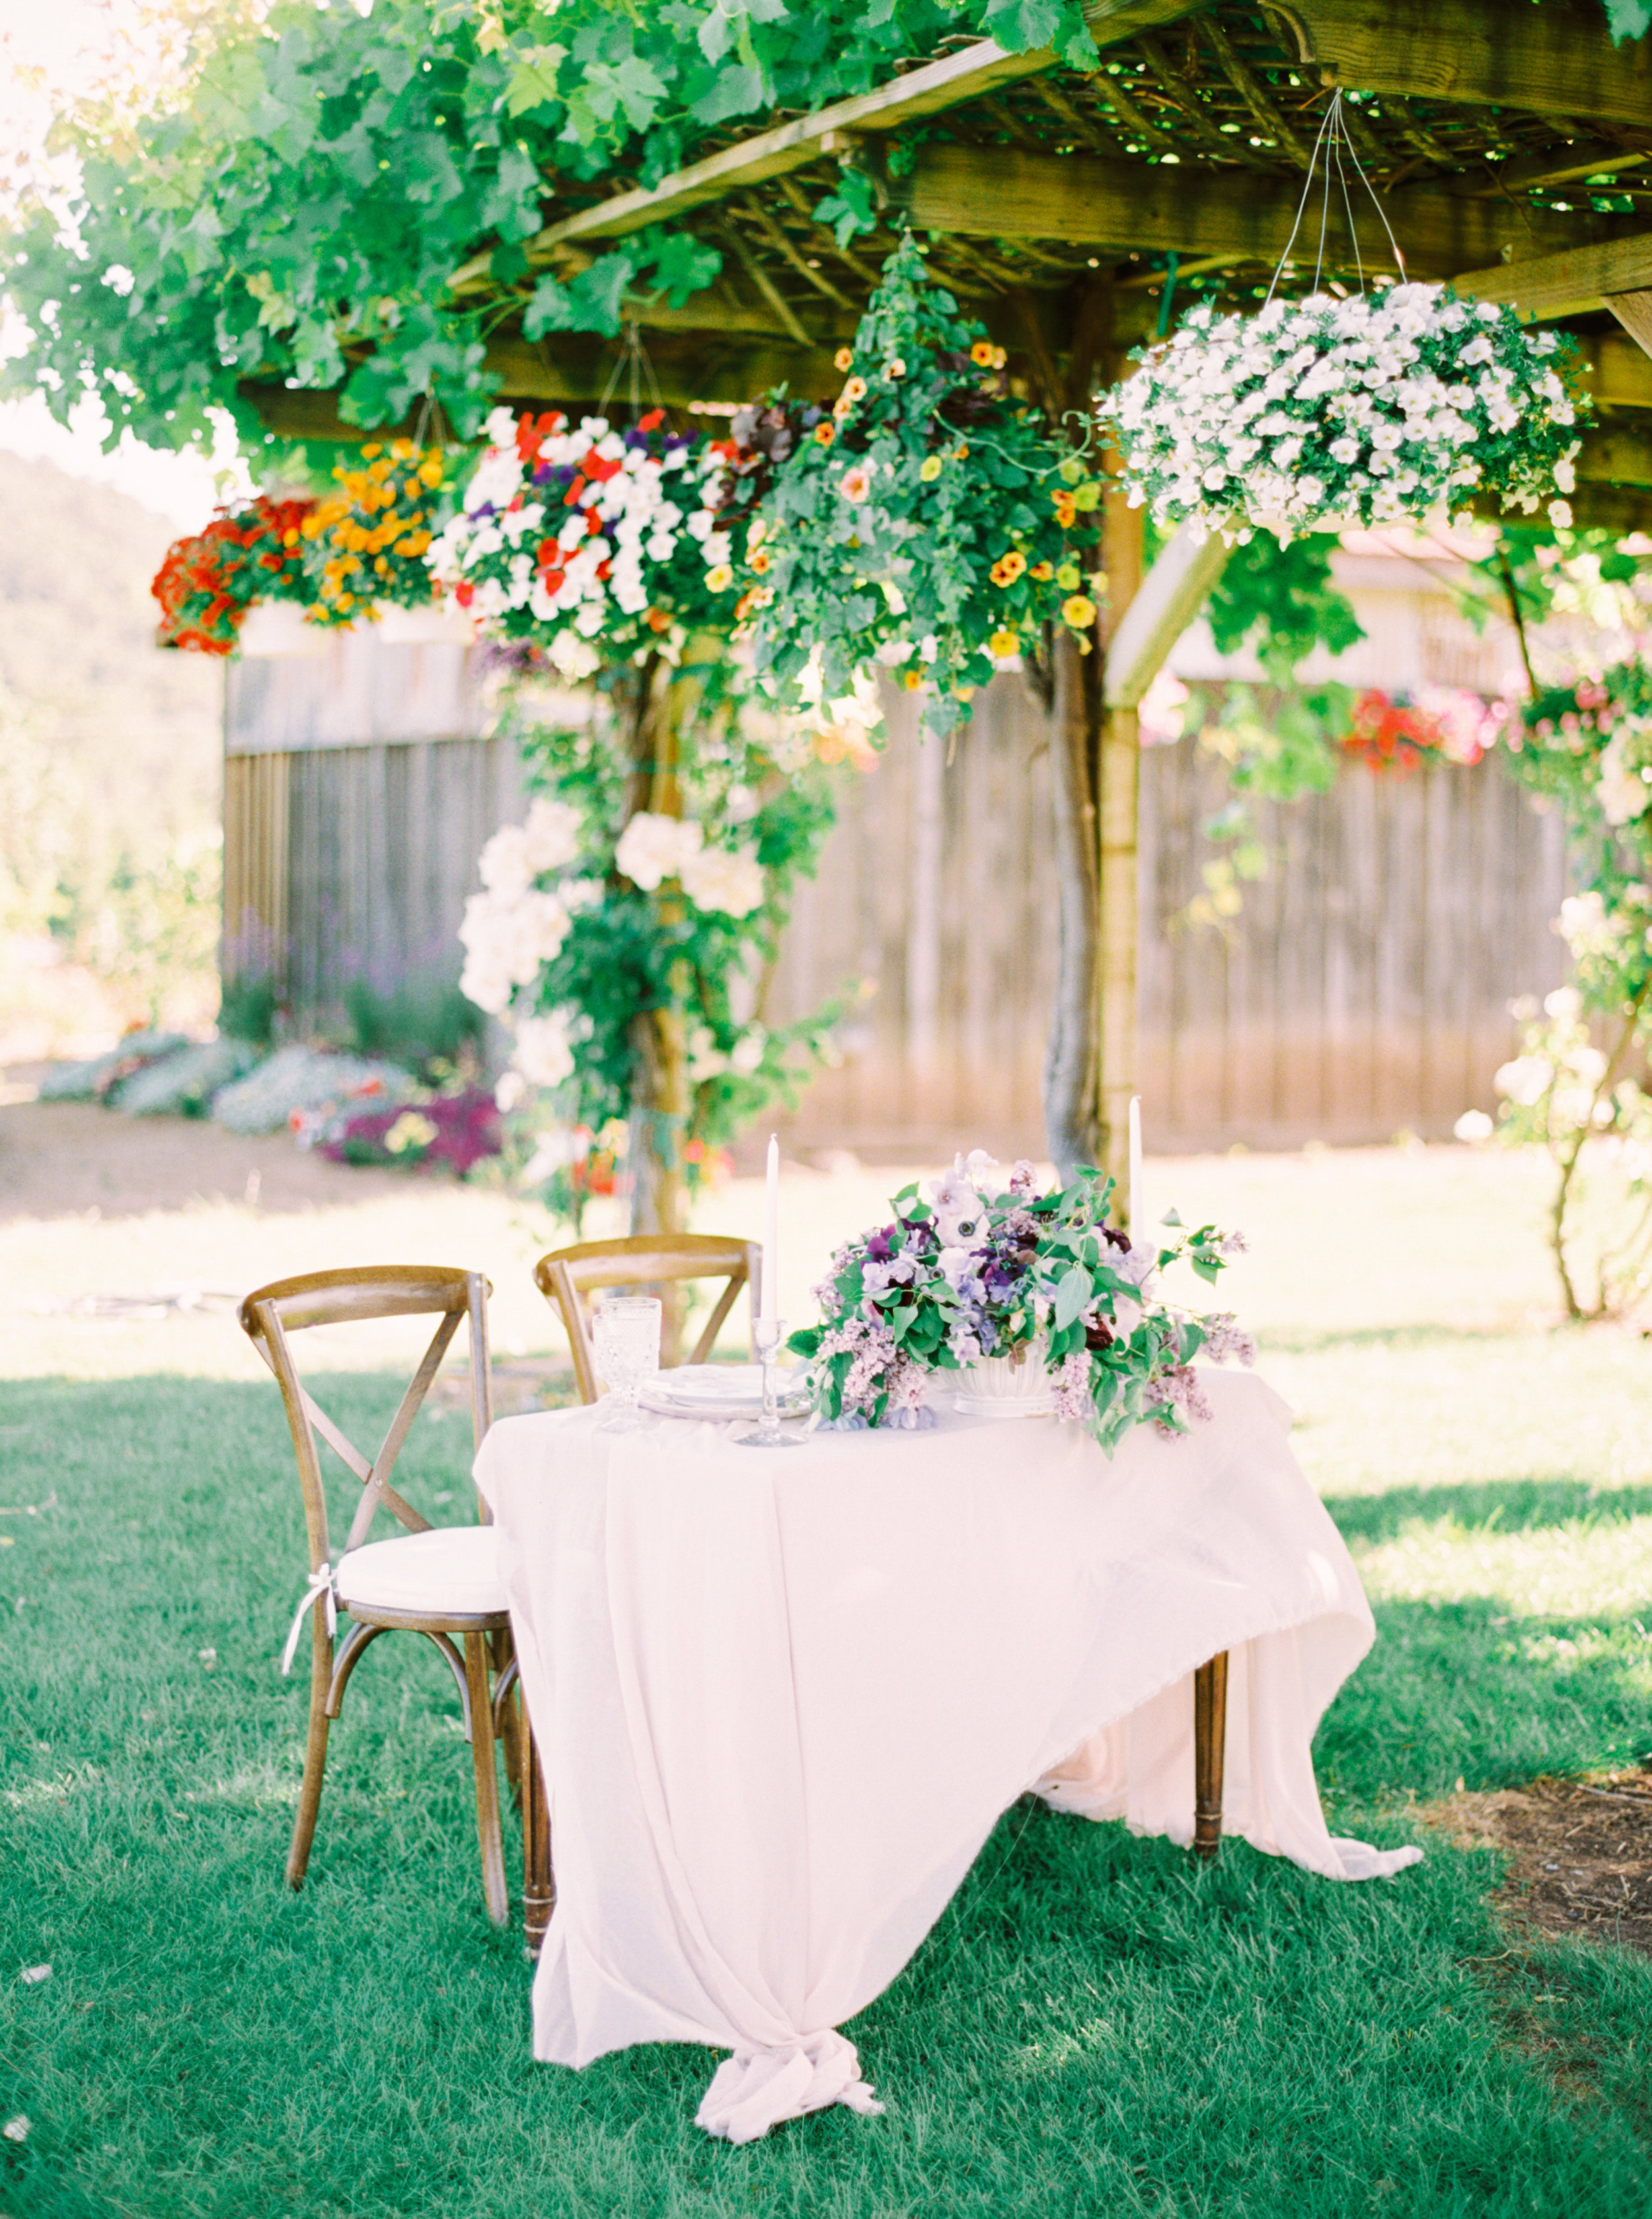 This-Love-of-Yours-Kirigin-Cellars-Flower-Arch-Styled-Shoot-130.jpg